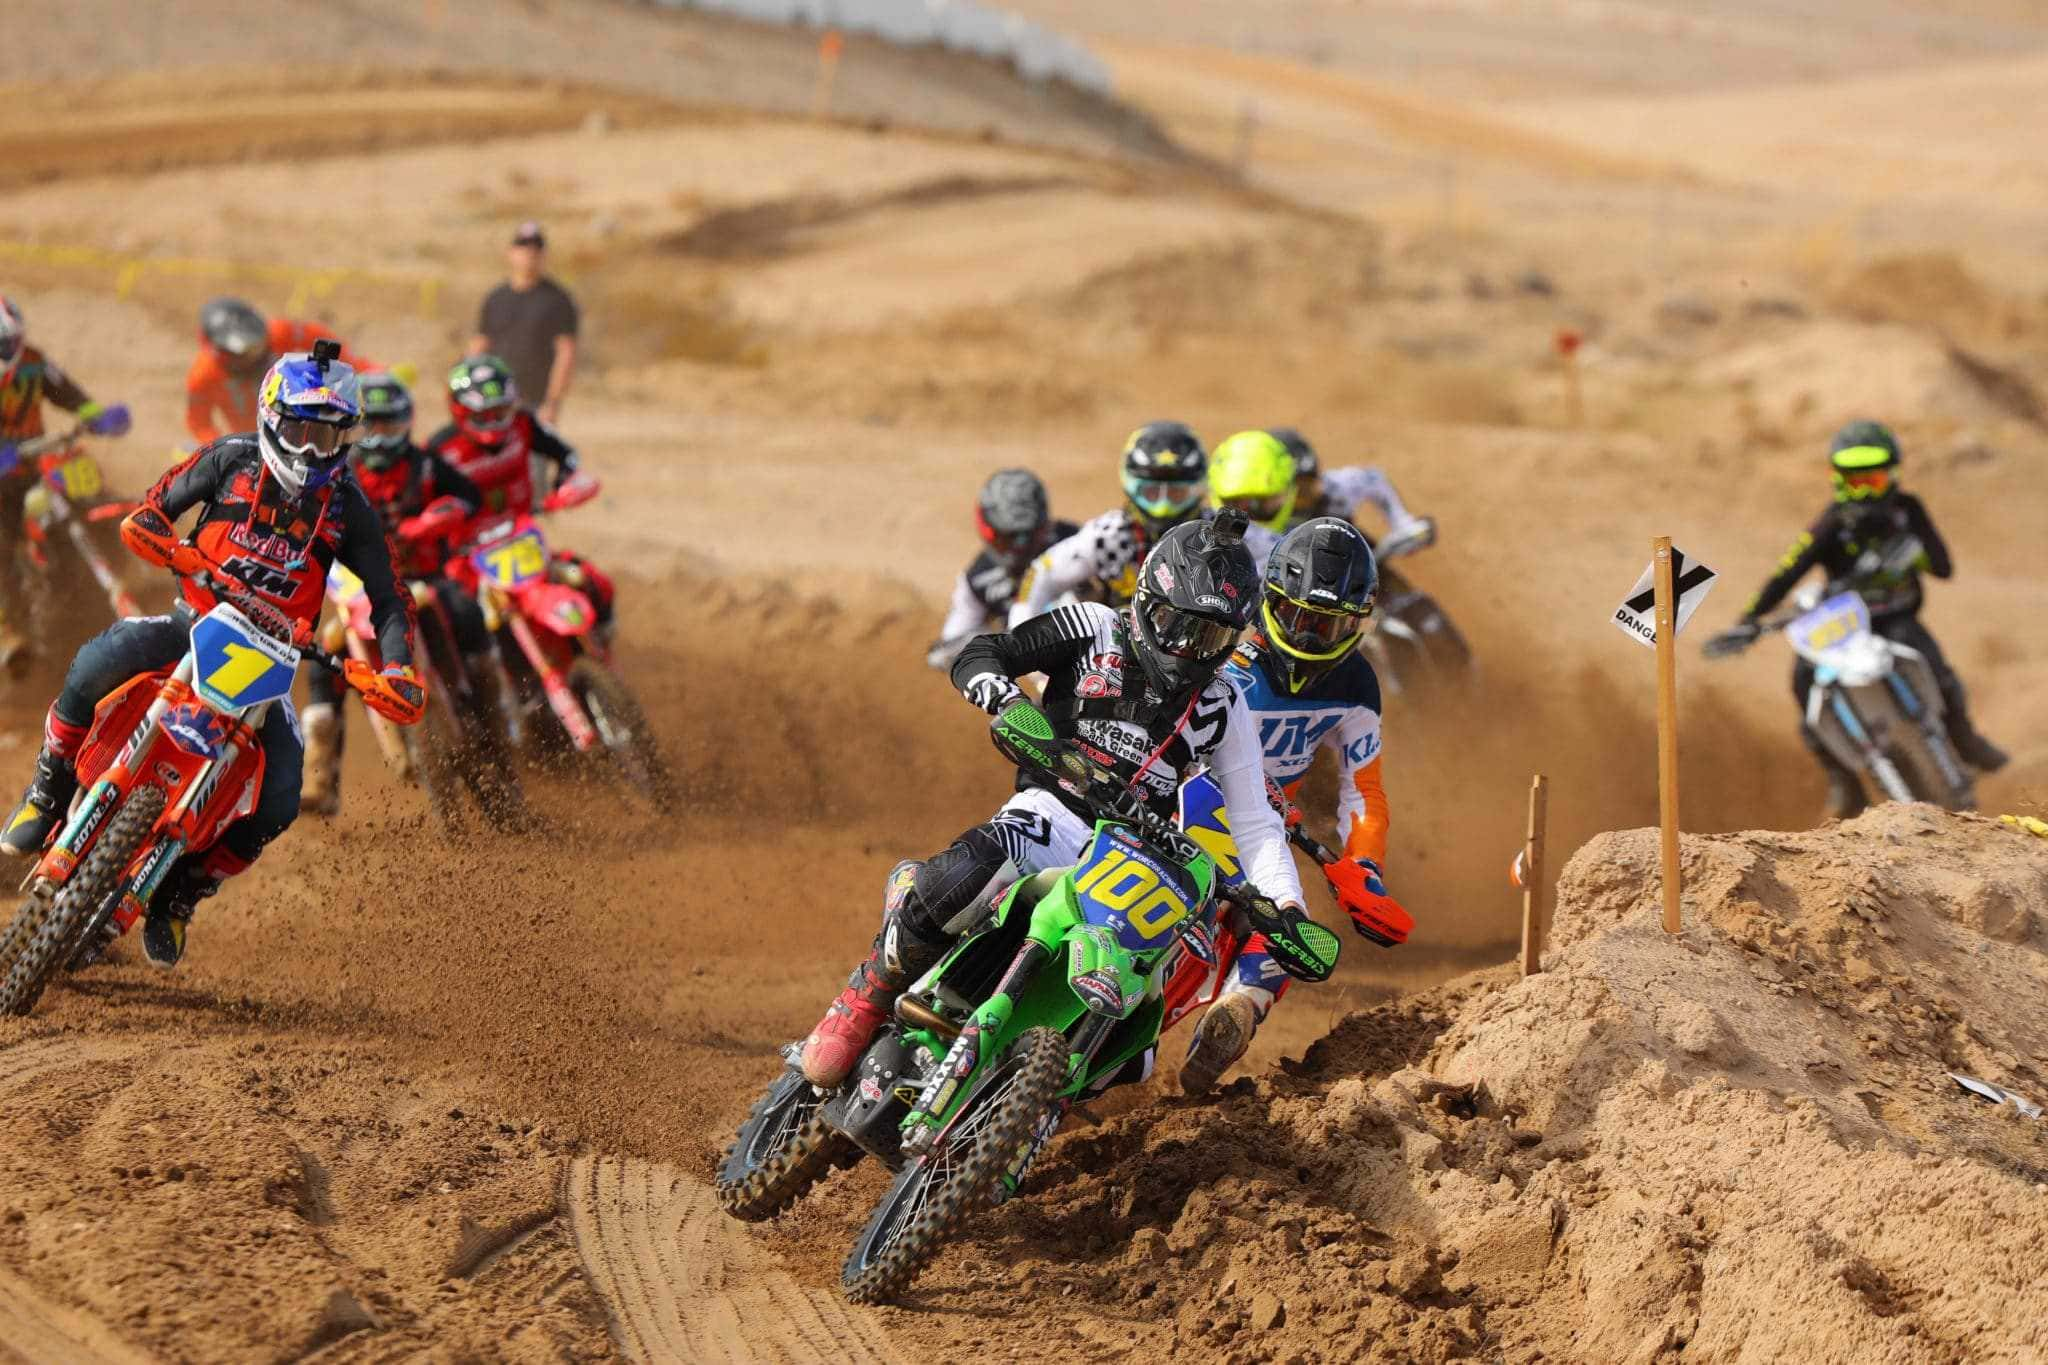 Zach Bell riding his KX450 at the 2020 Primm WORCS race